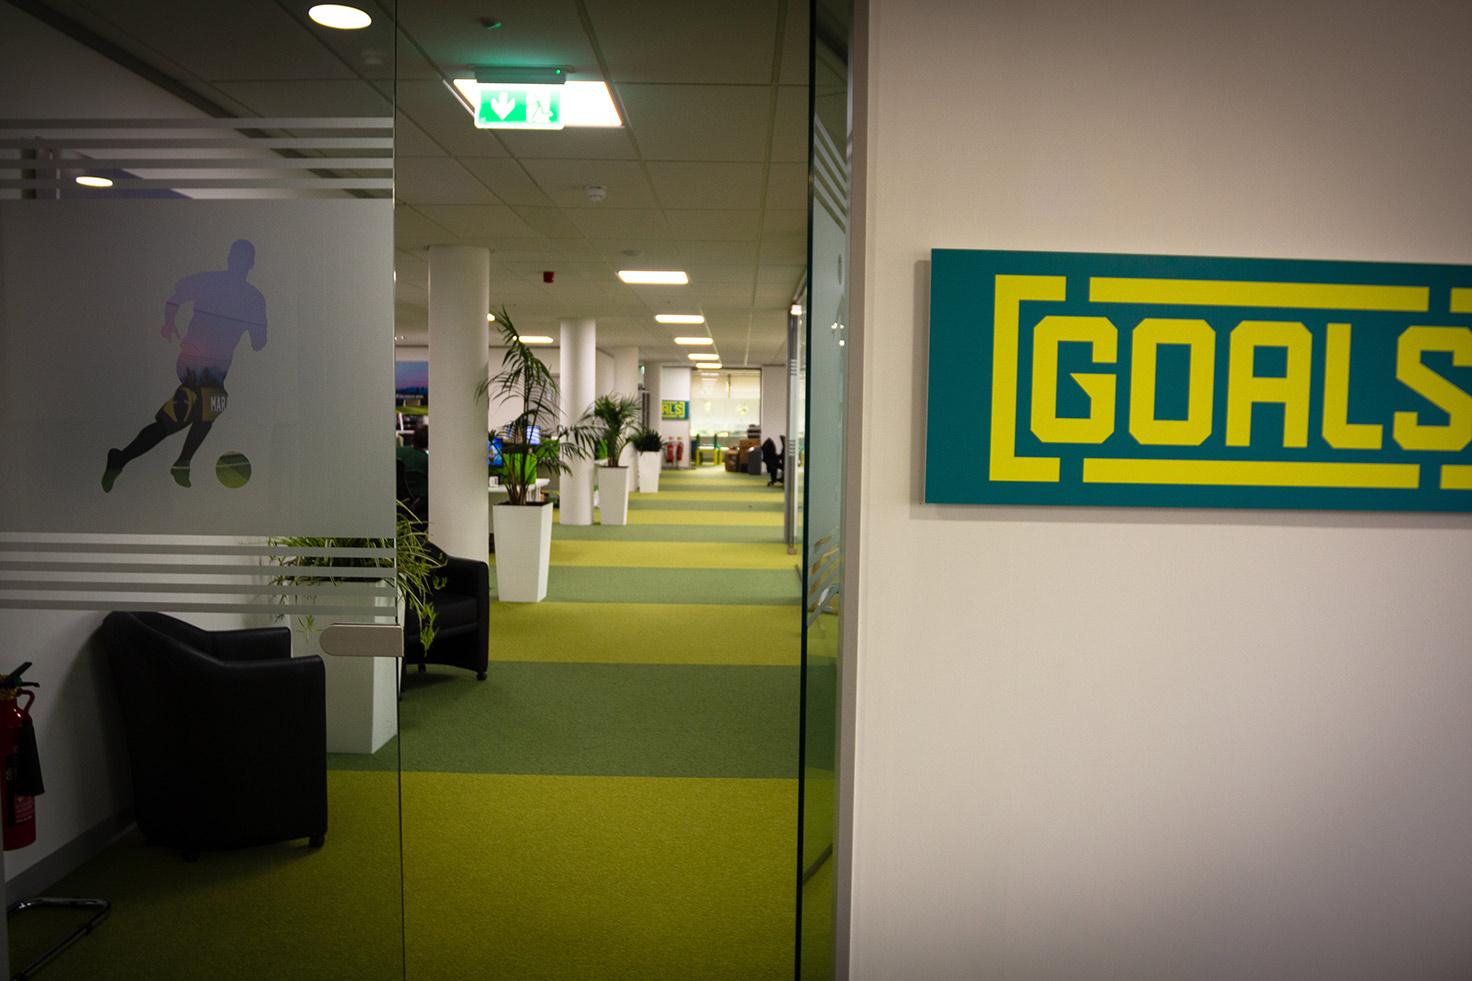 Goals offices at Clyde Blowers Capital Ltd - Designed and Installed by Jack Hyams